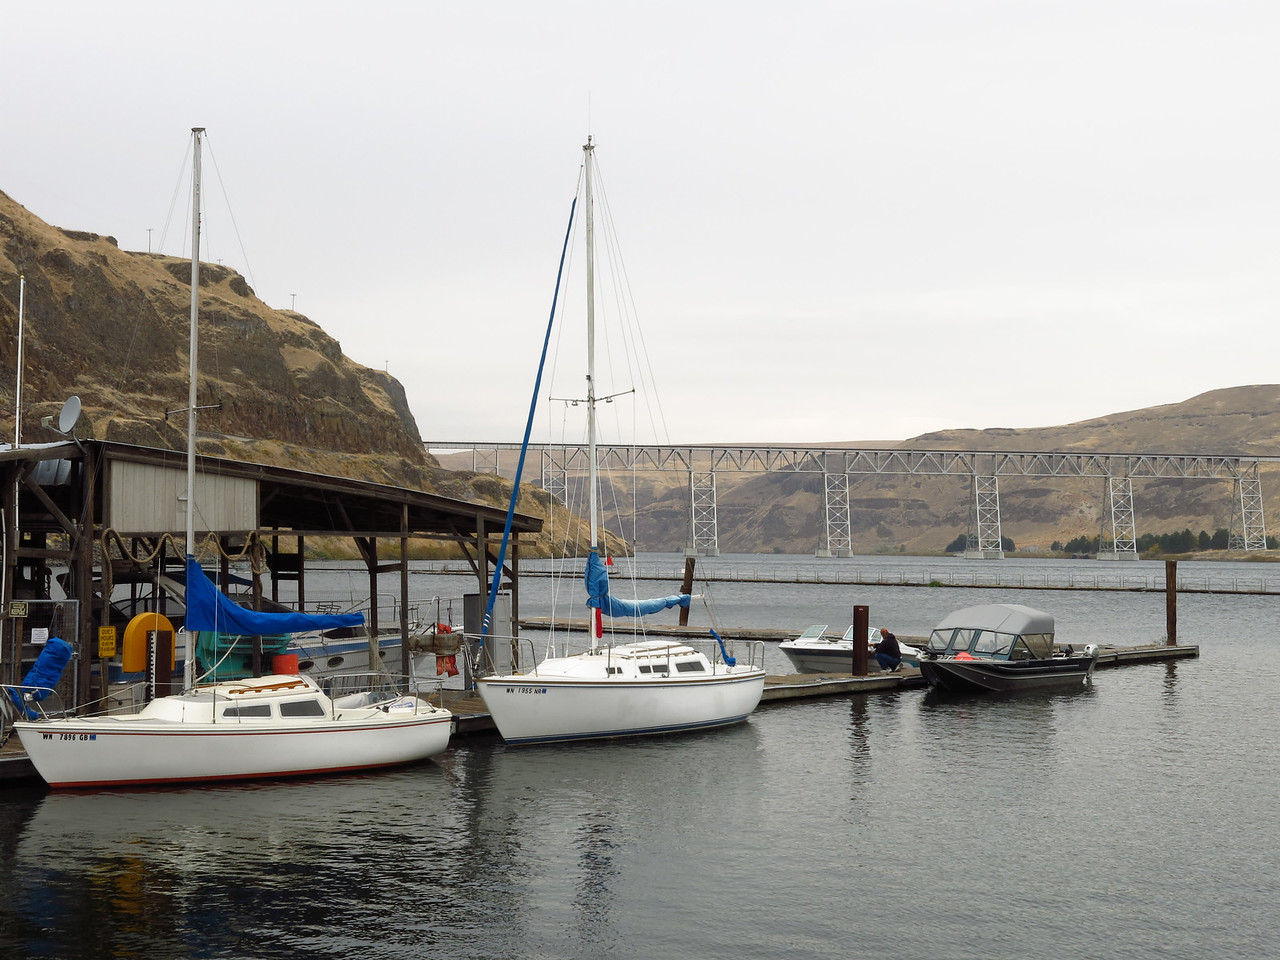 We stopped at the marina at Lyons Ferry to look around.  The bridge in the distance is a railroad bridge.  Martin was surprised to see sailboats on the Snake River.  The first one is a Catalina 22 and the second one is Catalina 27.